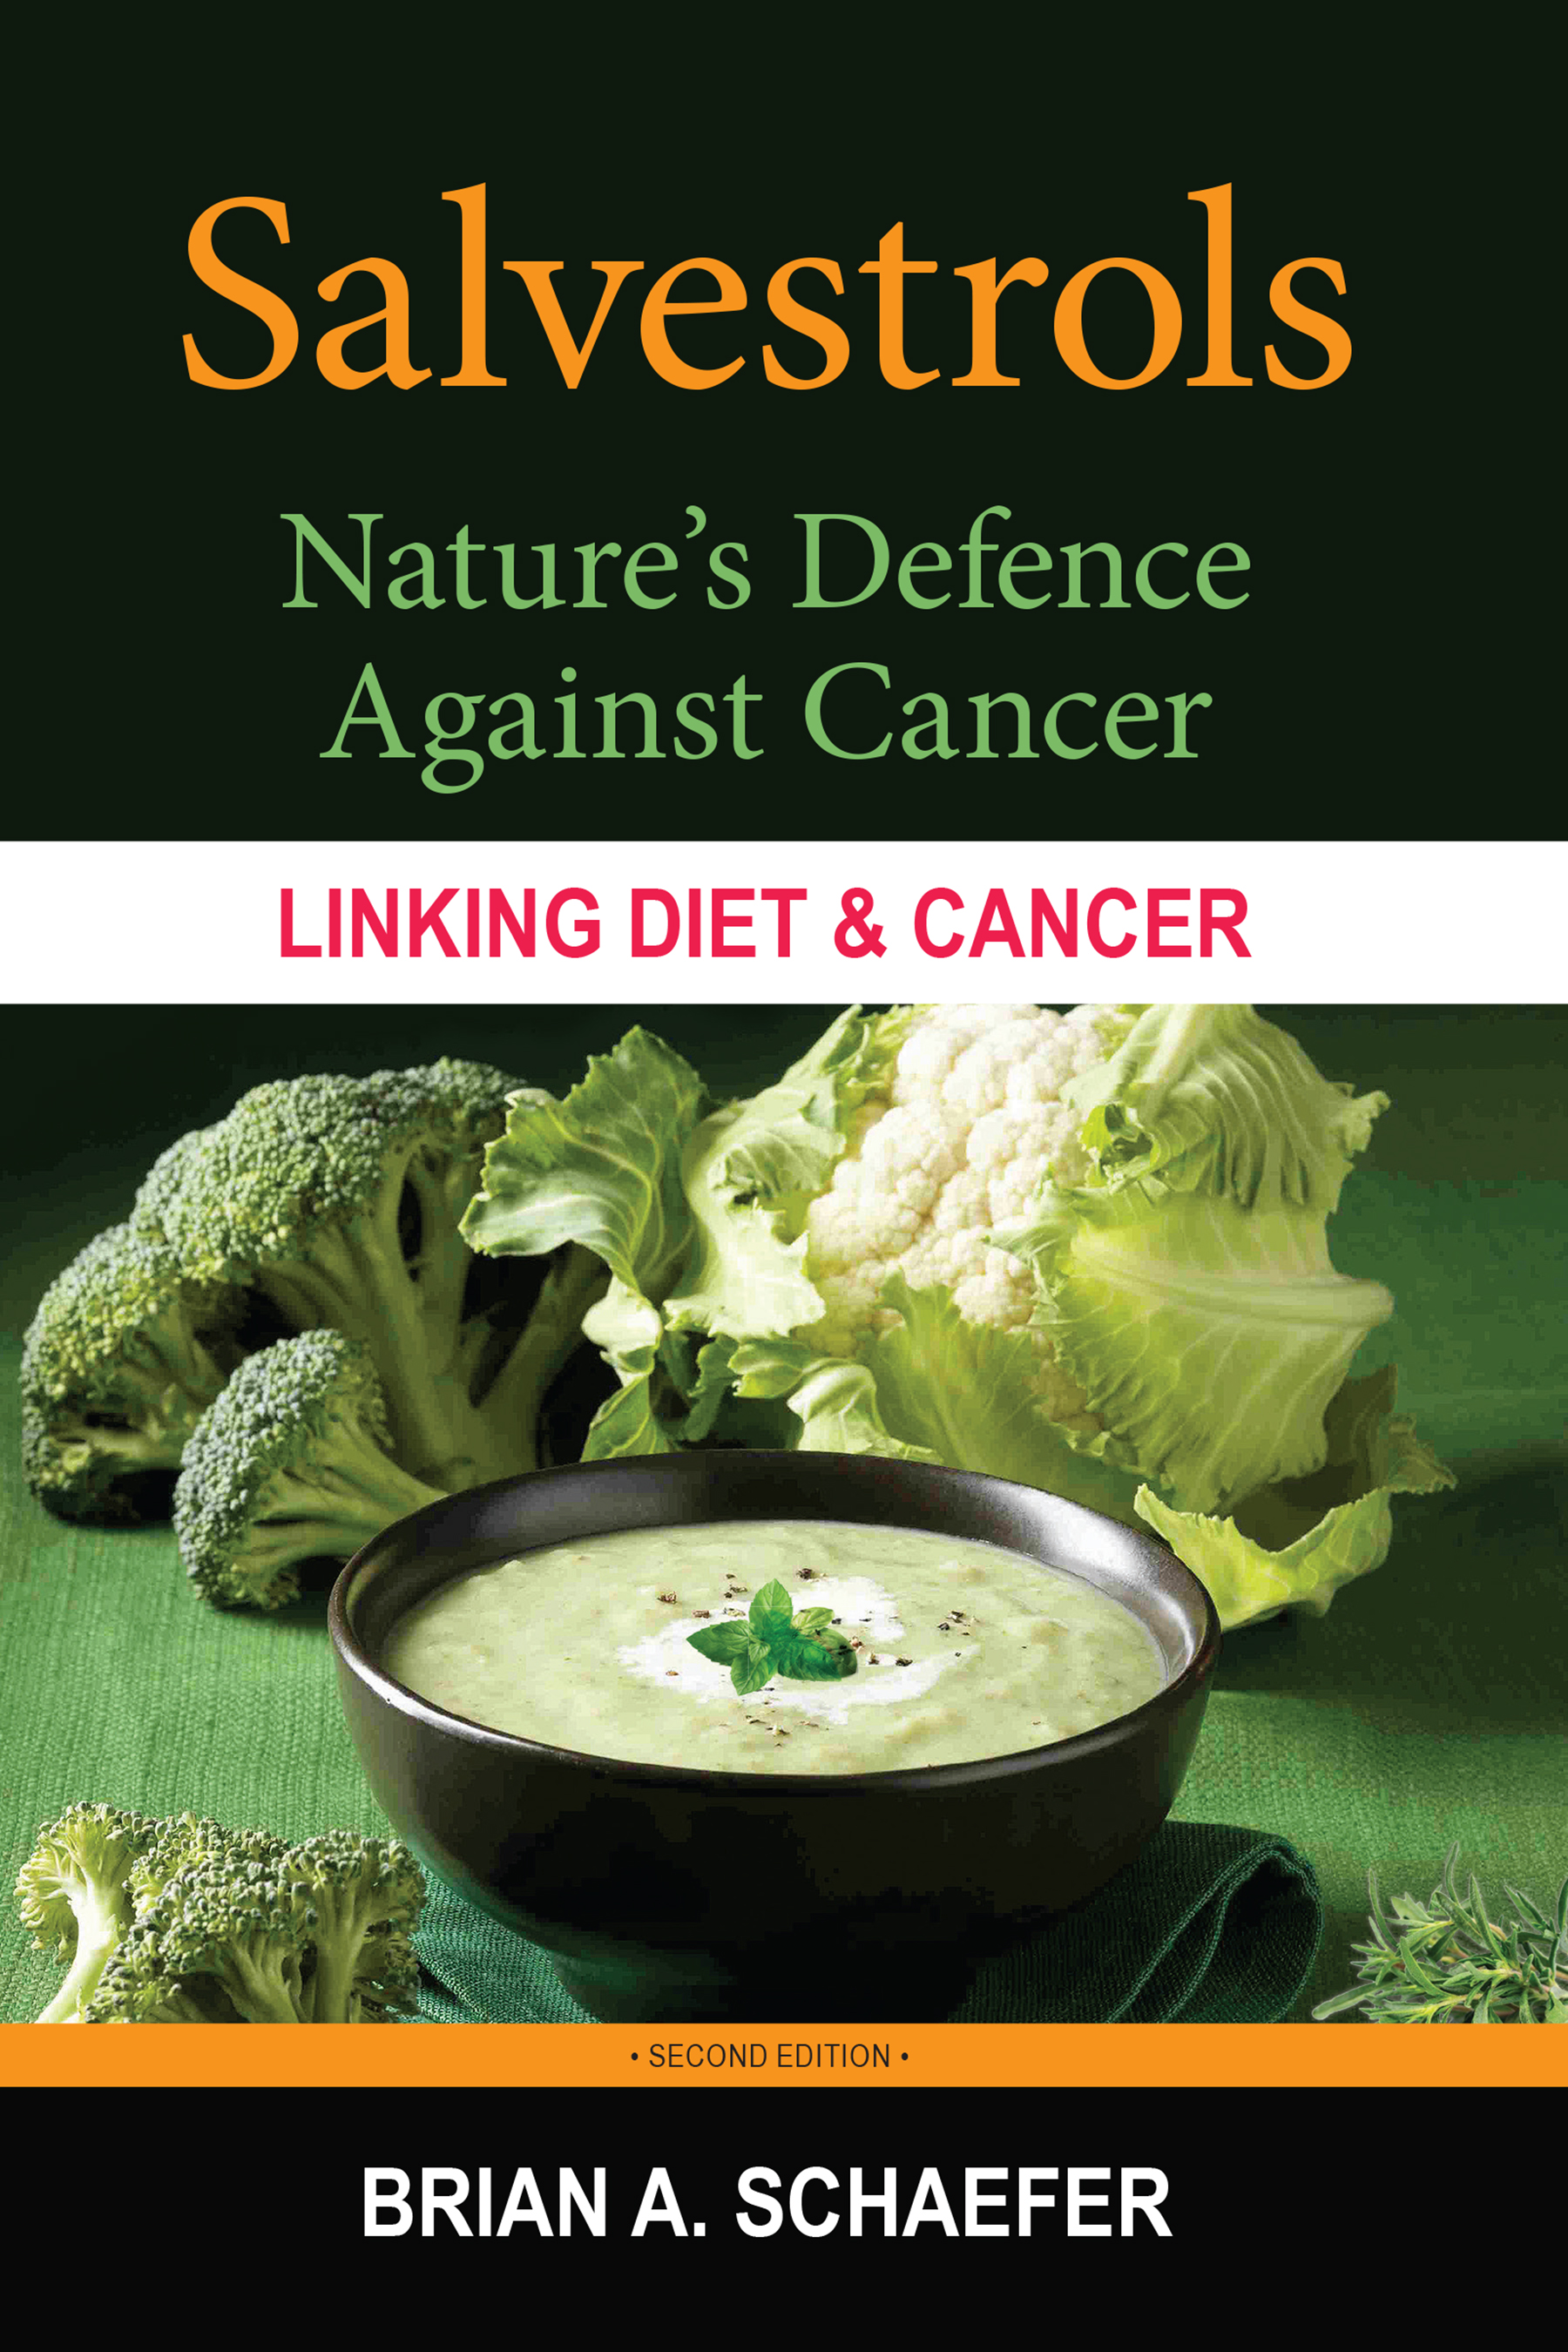 Salvestrols: Nature's Defence Against Cancer by Brian A. Schaefer